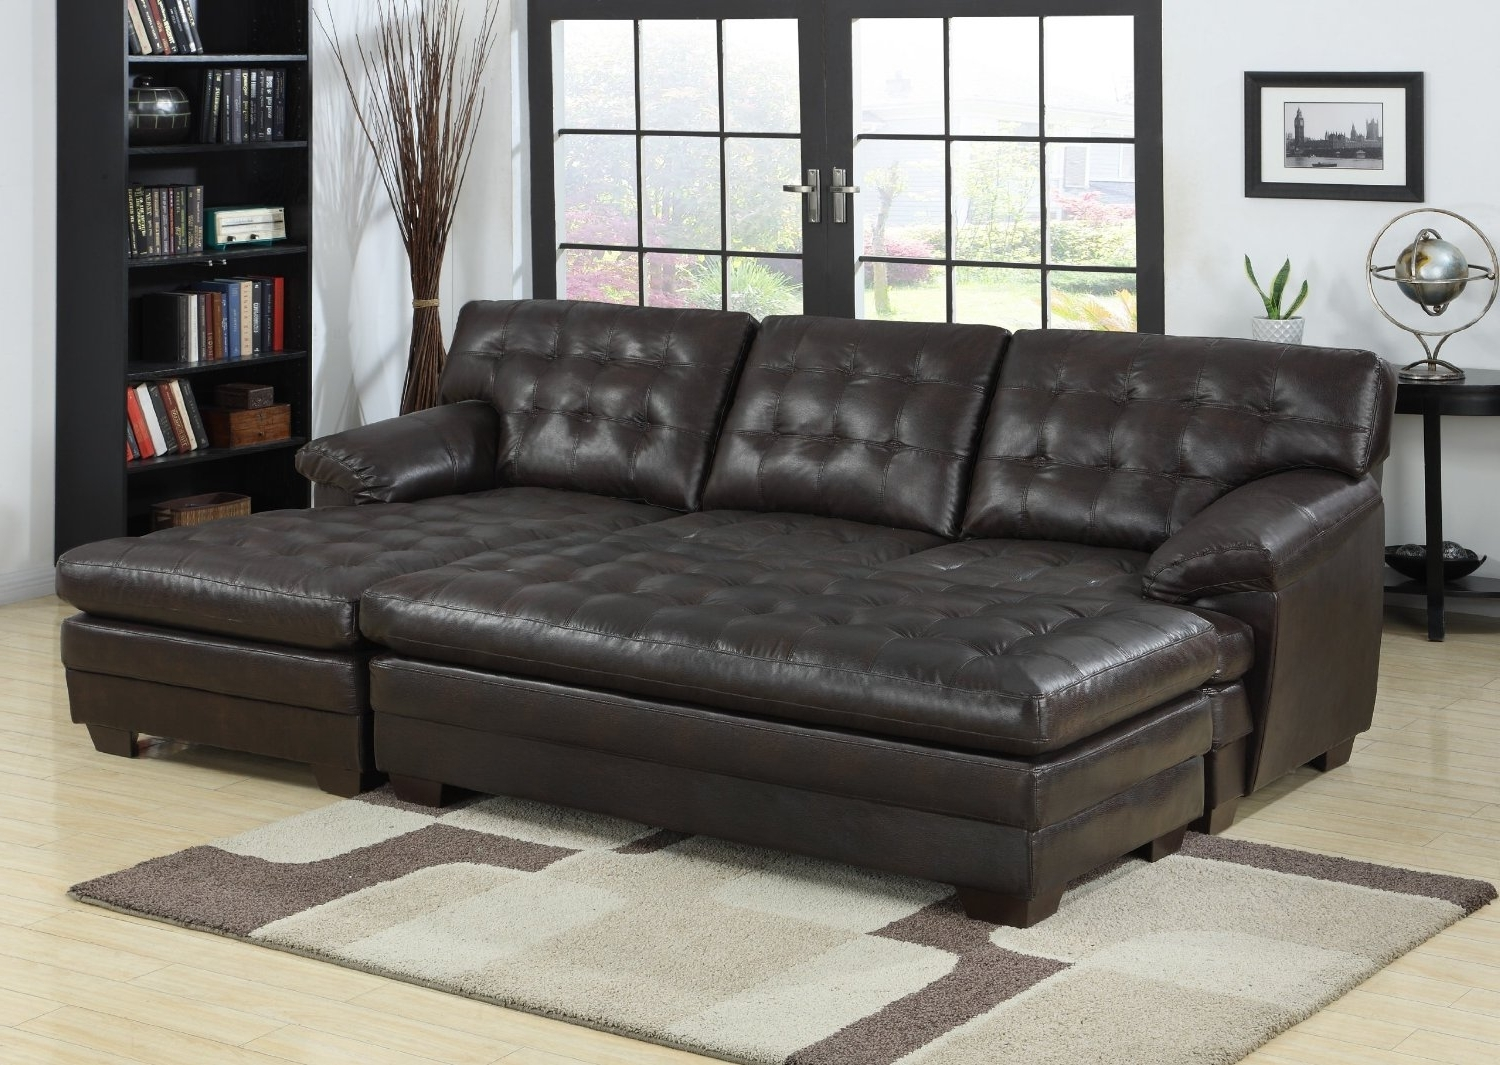 Most Recent Double Chaise Lounge Sofa Image Gallery — The Home Redesign : The In Leather Chaise Lounge Sofa Beds (View 2 of 15)